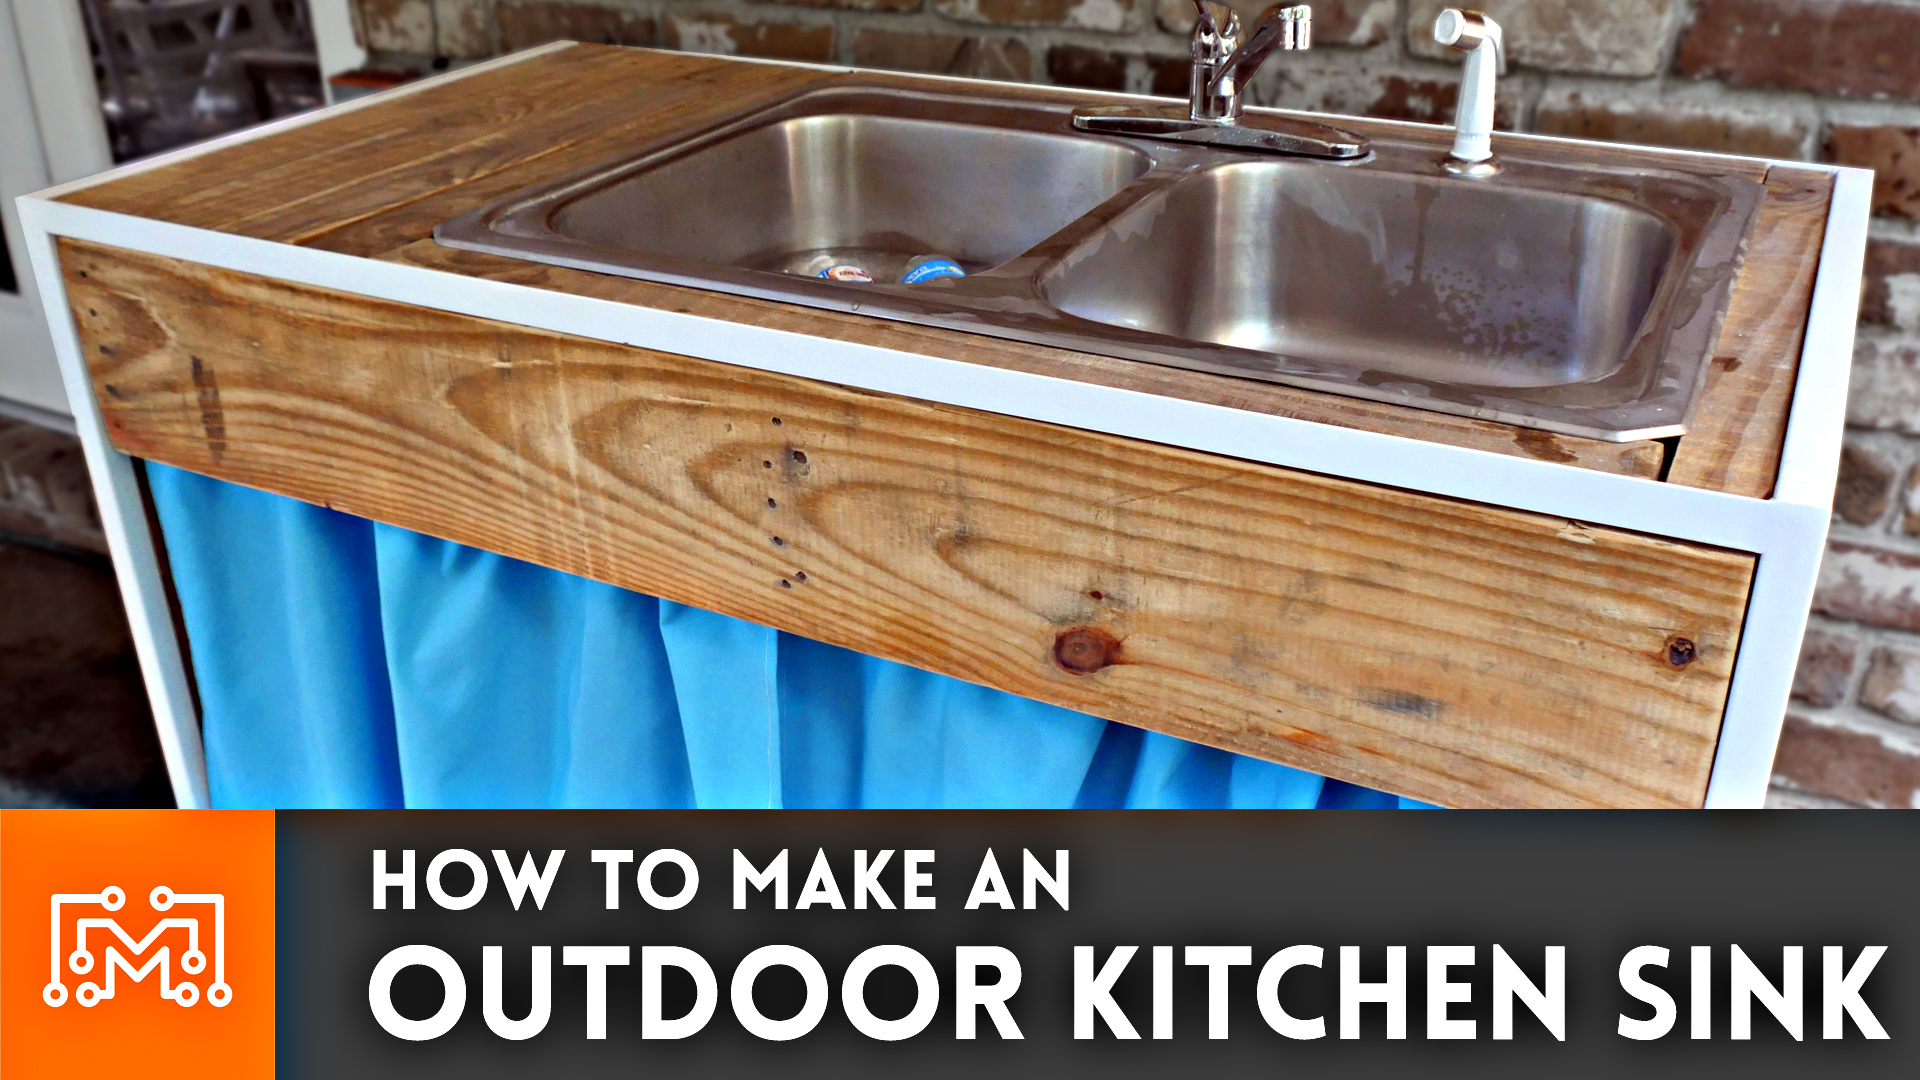 Charmant Outdoor Kitchen Sink // Woodworking, Metalworking, Sewing How To